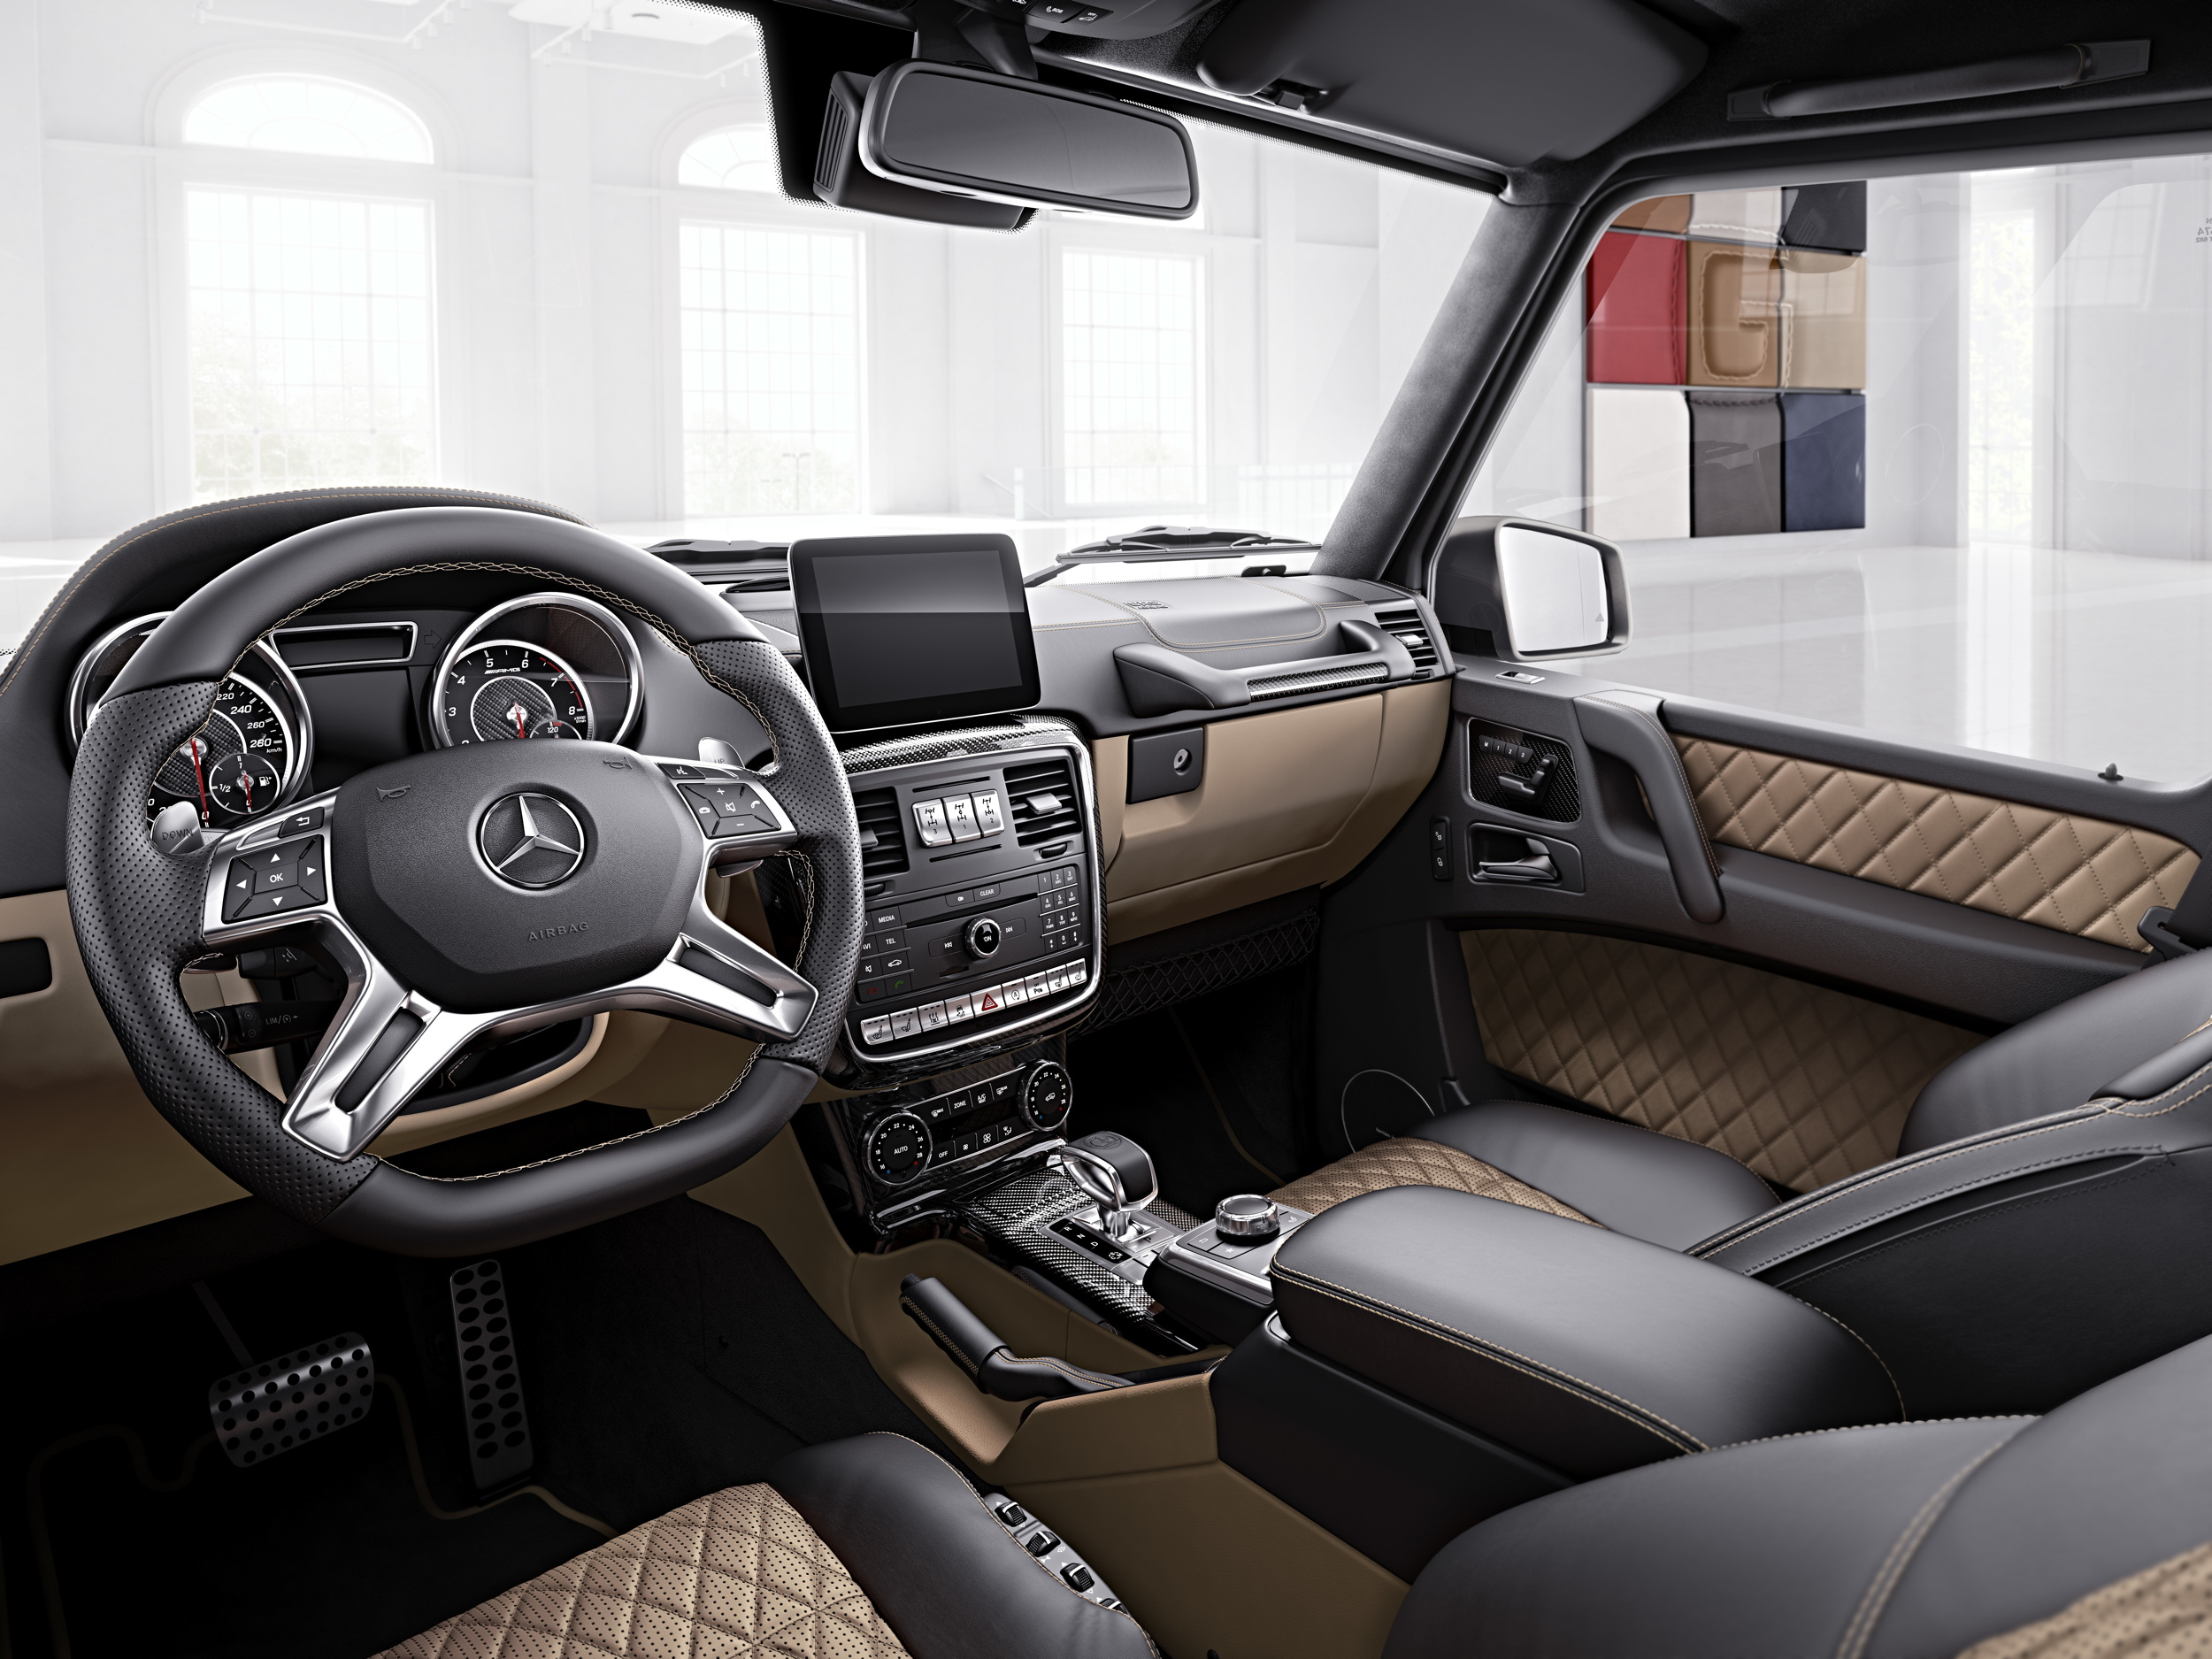 Mercedes-AMG G-Class Exclusive Edition interior